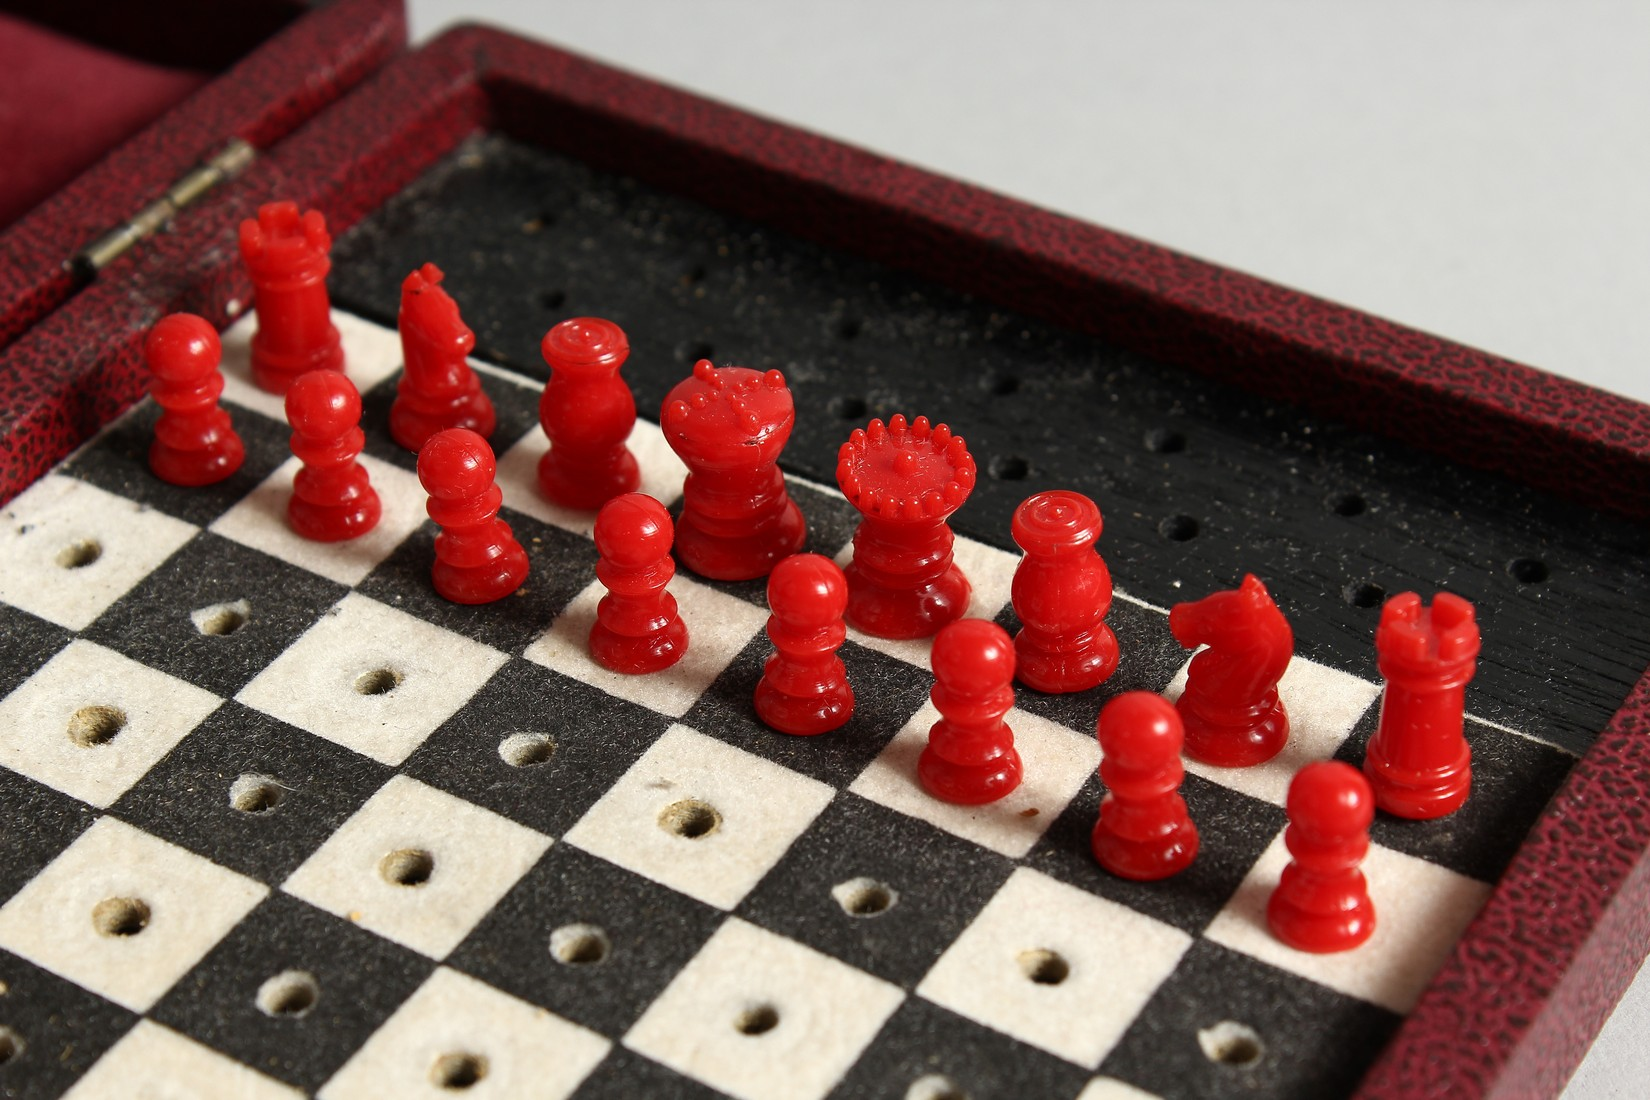 A TRAVELLING CHESS SET - Image 2 of 6